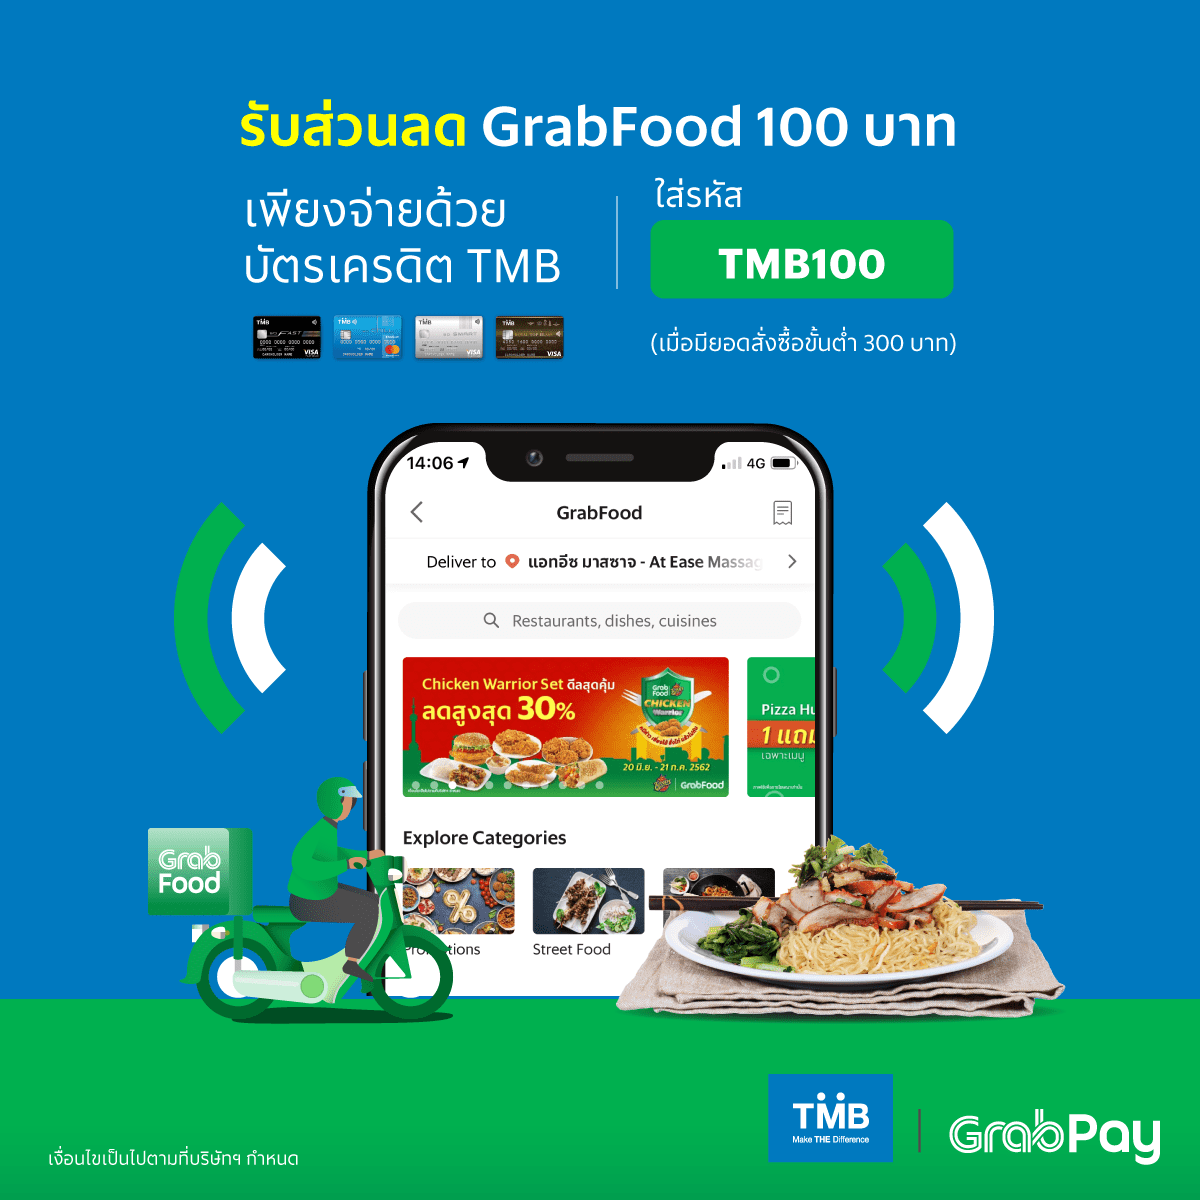 Get 5 GrabFood promos from our bank partners when pay with GrabPay